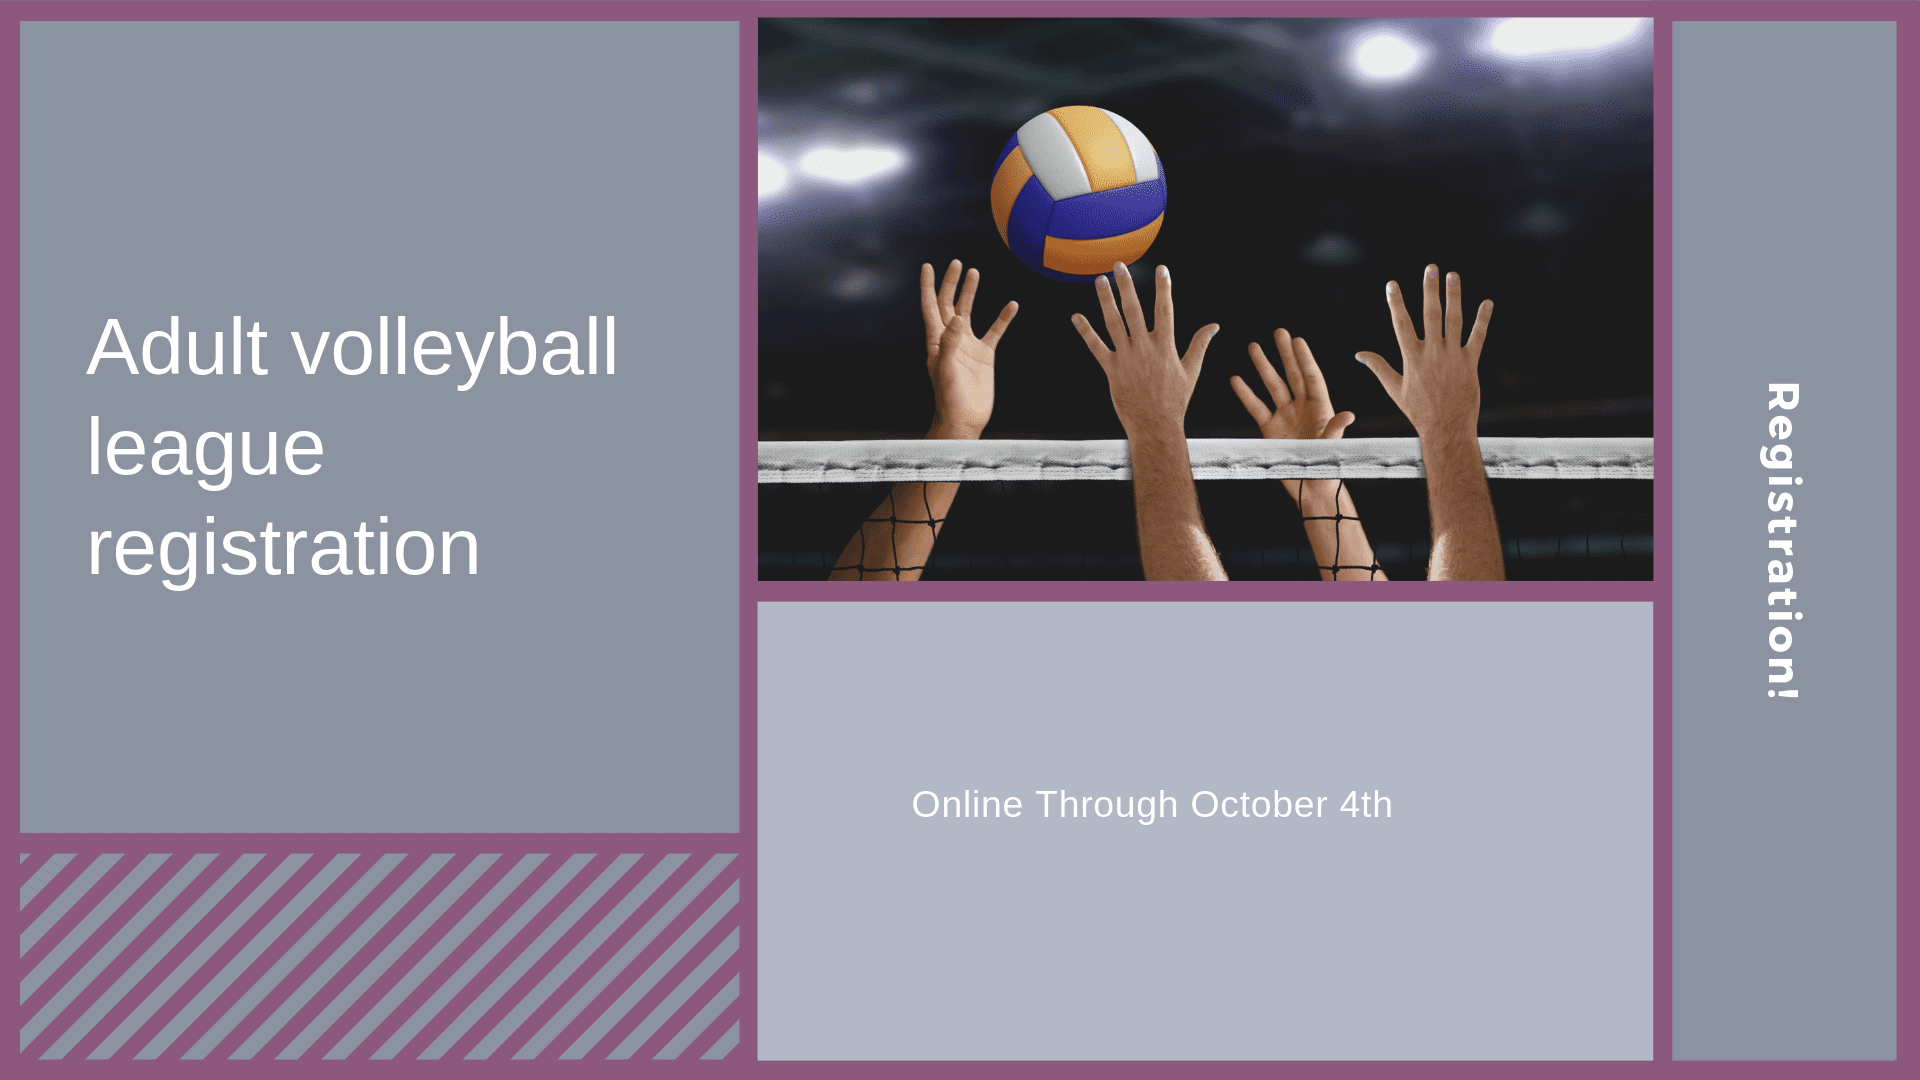 Adult volleyball league registration